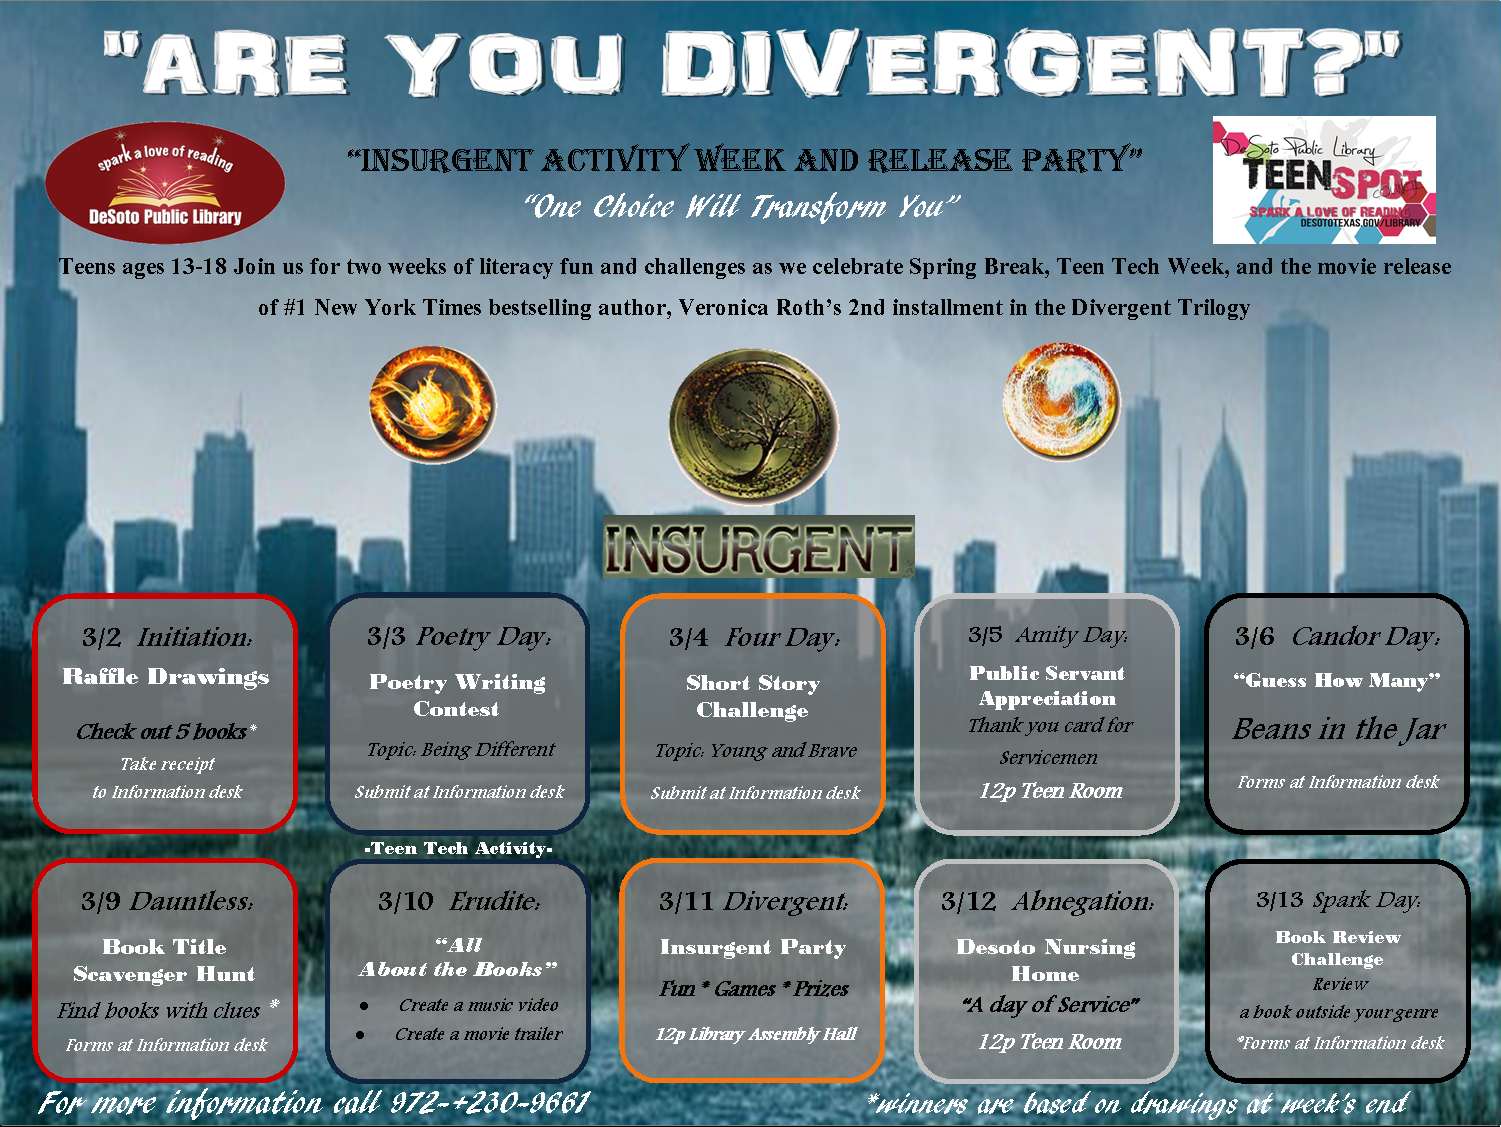 2015.03.02 Are You Divergent.png